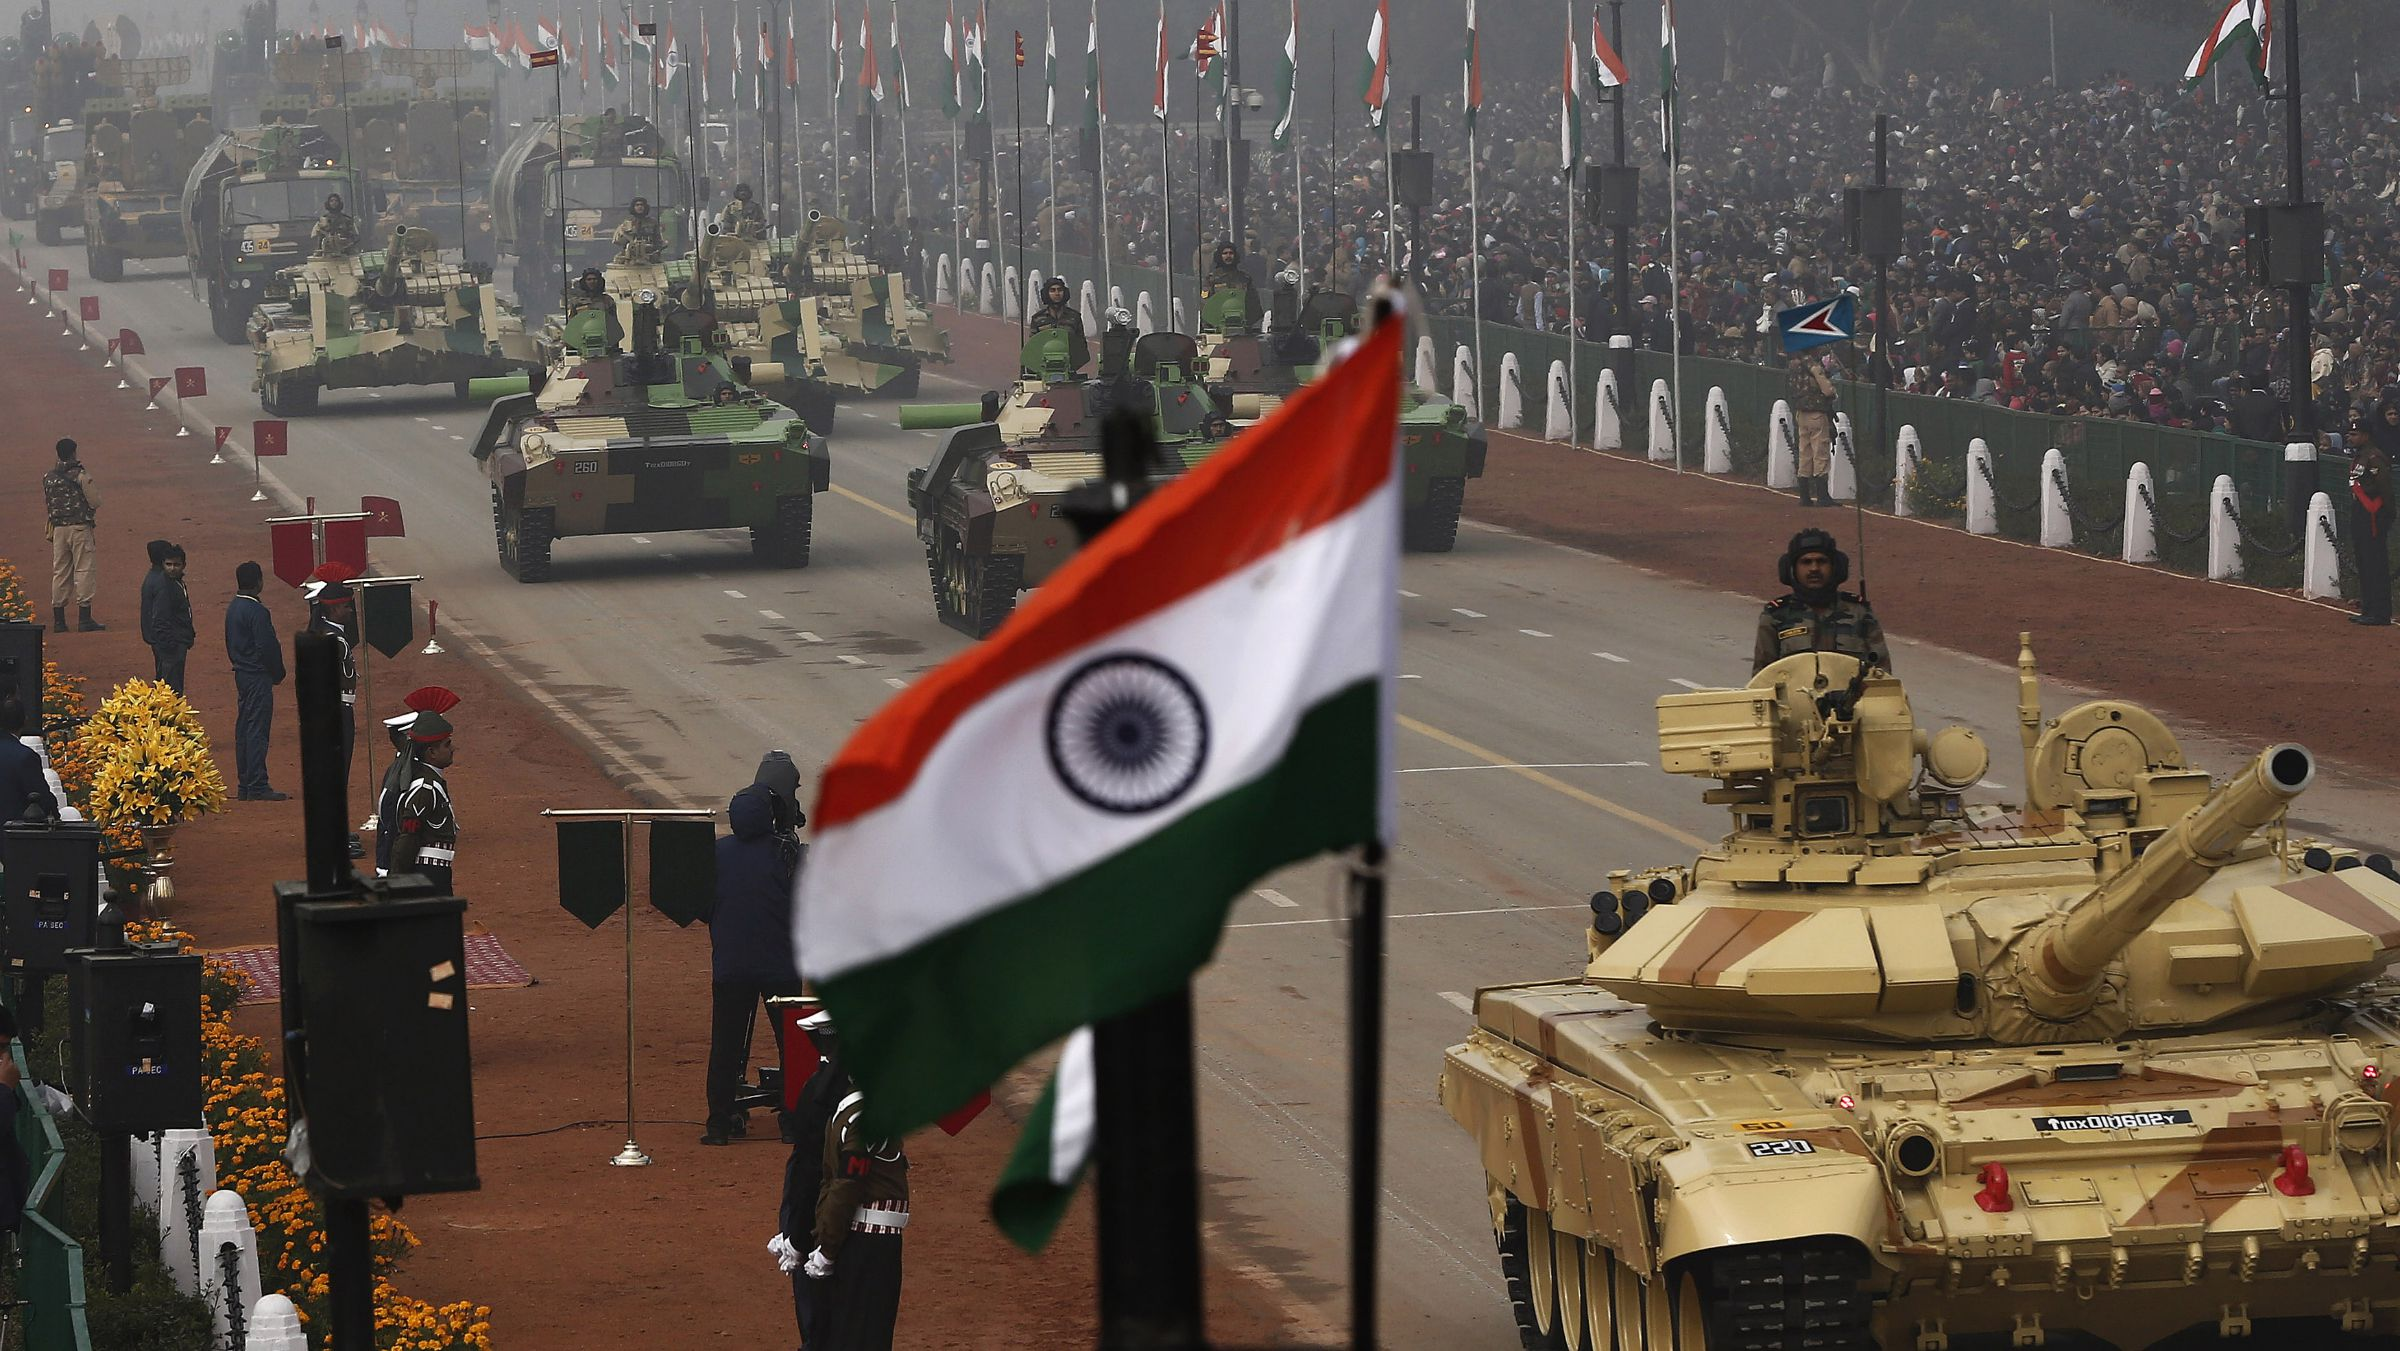 Indian Army's Arjun MK-I tanks (MBTs) are driven for display during the Republic Day parade in New Delhi January 26, 2014. India celebrated its 65th Republic Day on Sunday.